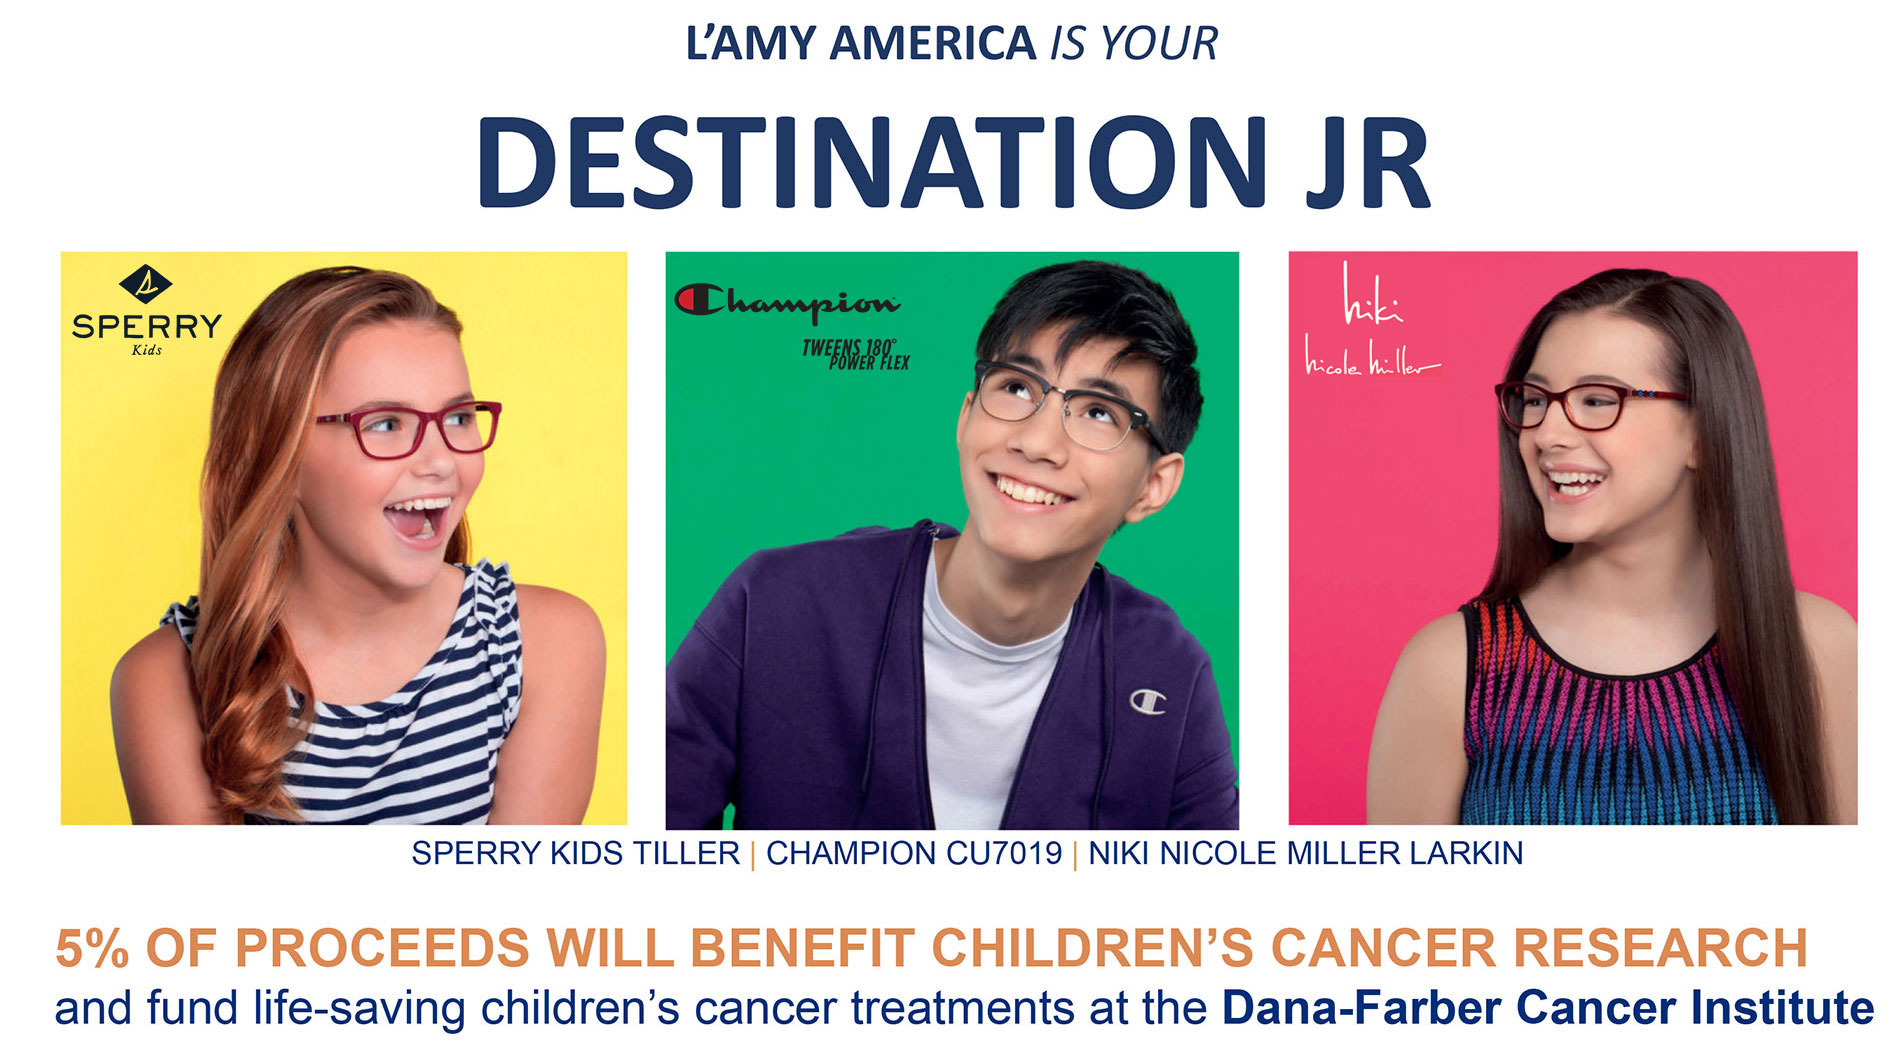 5% of proceeds will benefit children's cancer research and fund life-saving children's cancer treatments at the Dana-Farber Cancer Institute.